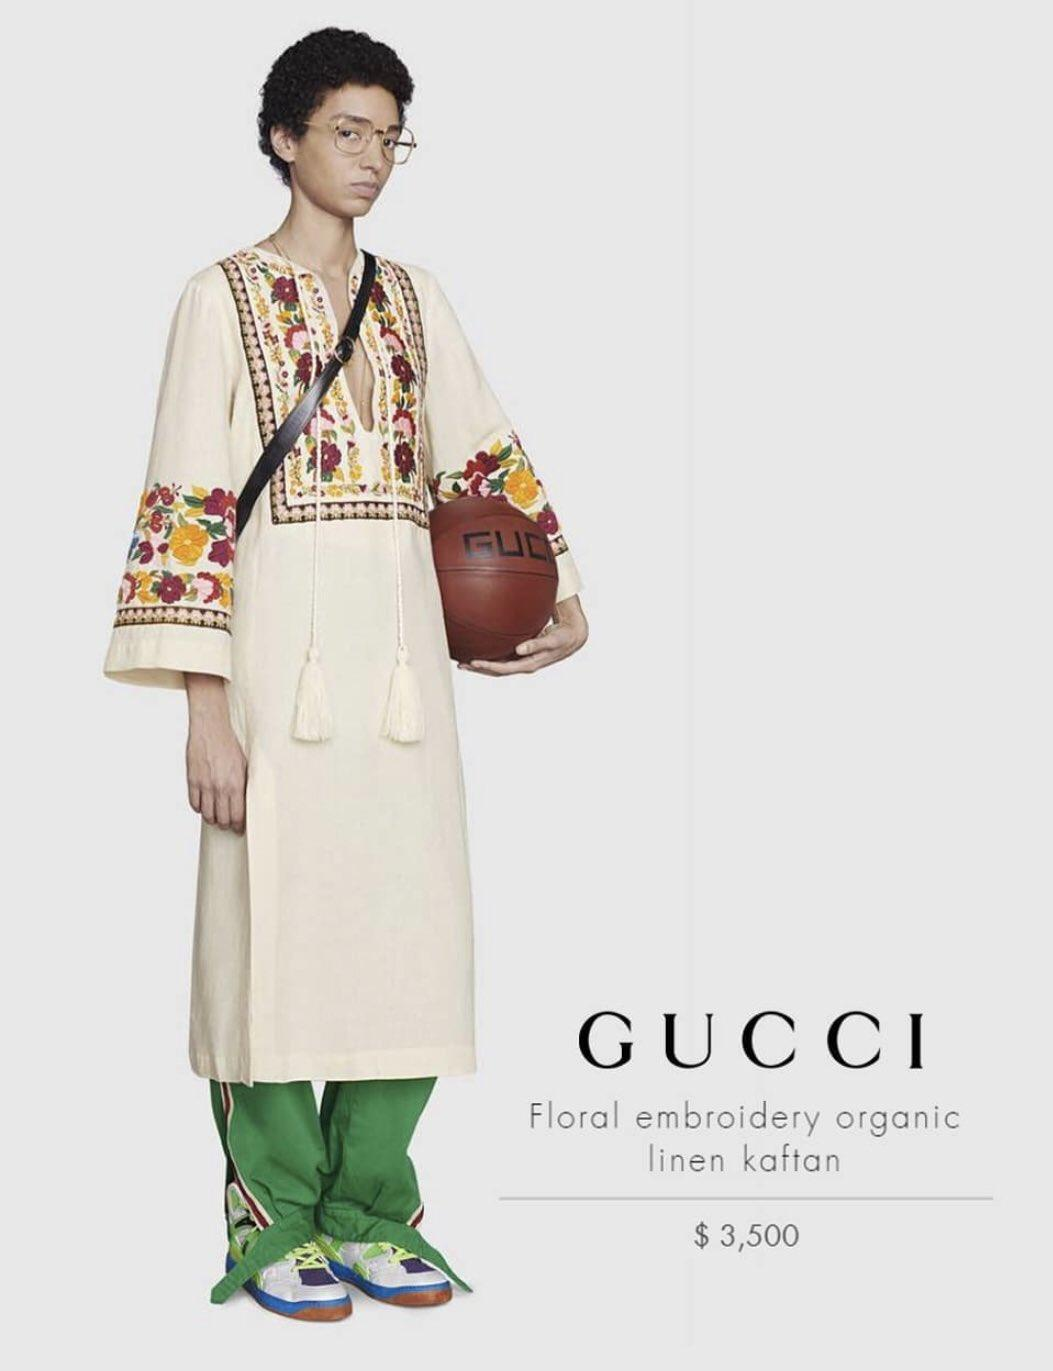 Gucci is selling 'Indian Kurta' for Rs 2.5 lakh, and desi Twitterati is shocked